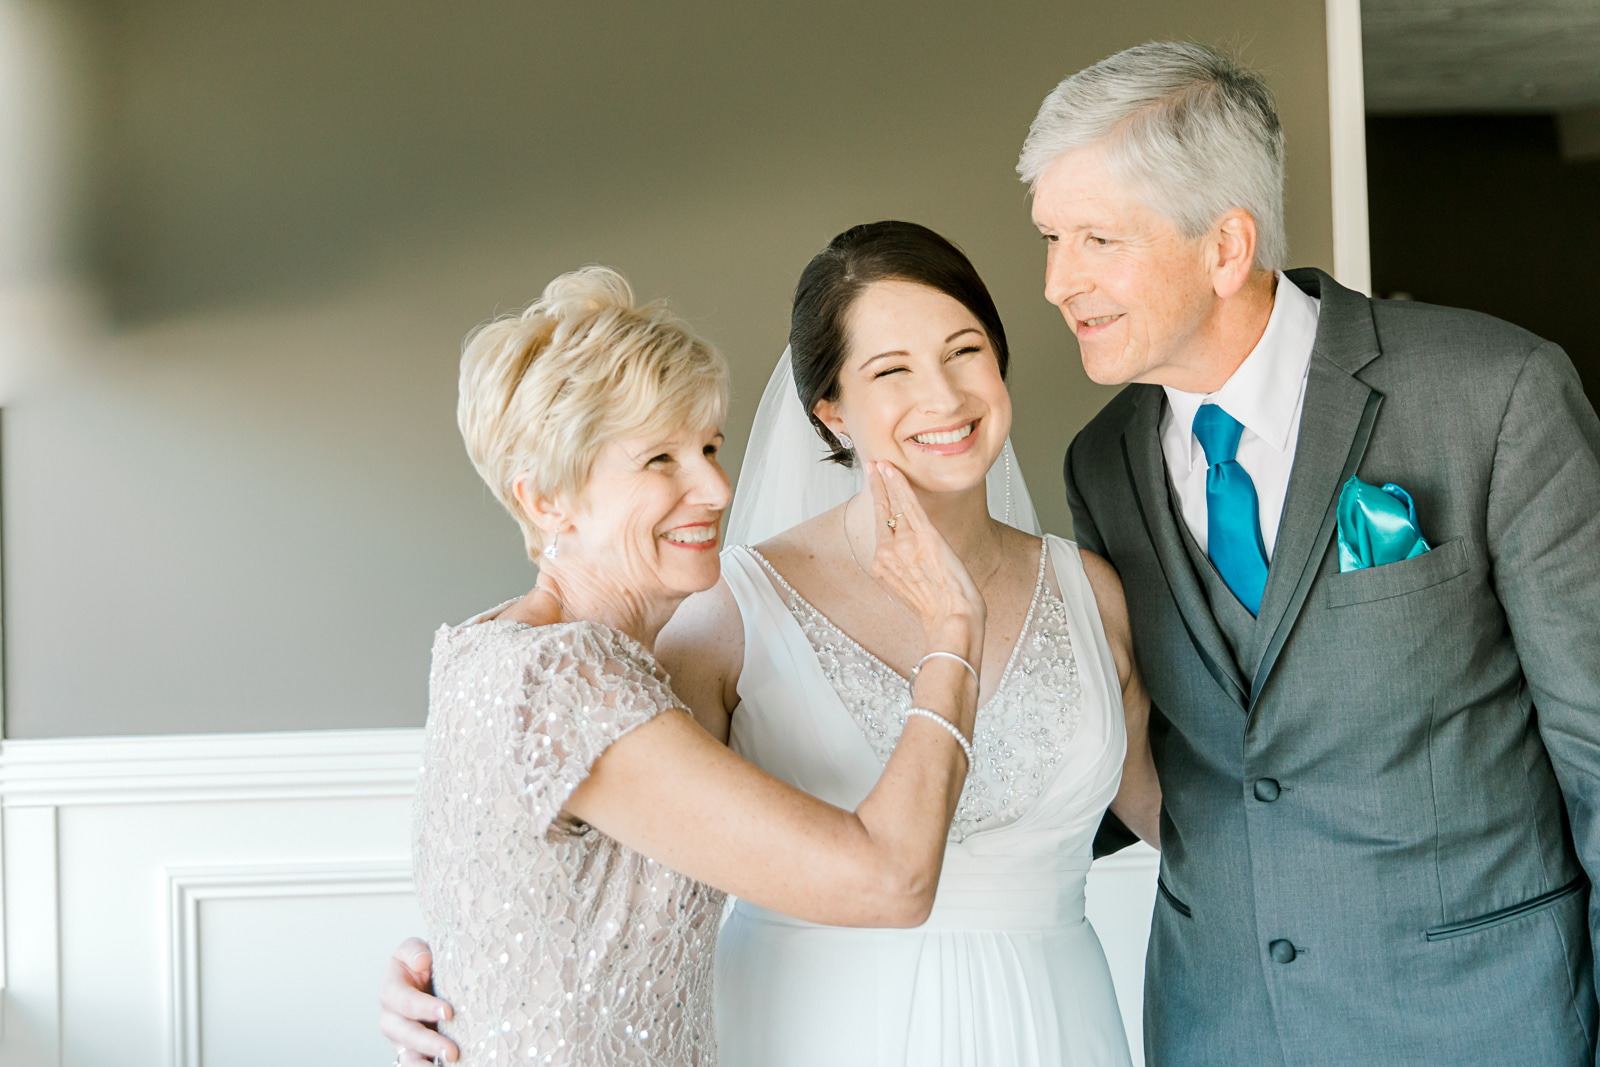 pleasant_valley_country_club_wedding_sutton_erica_pezente_photography (42).jpg